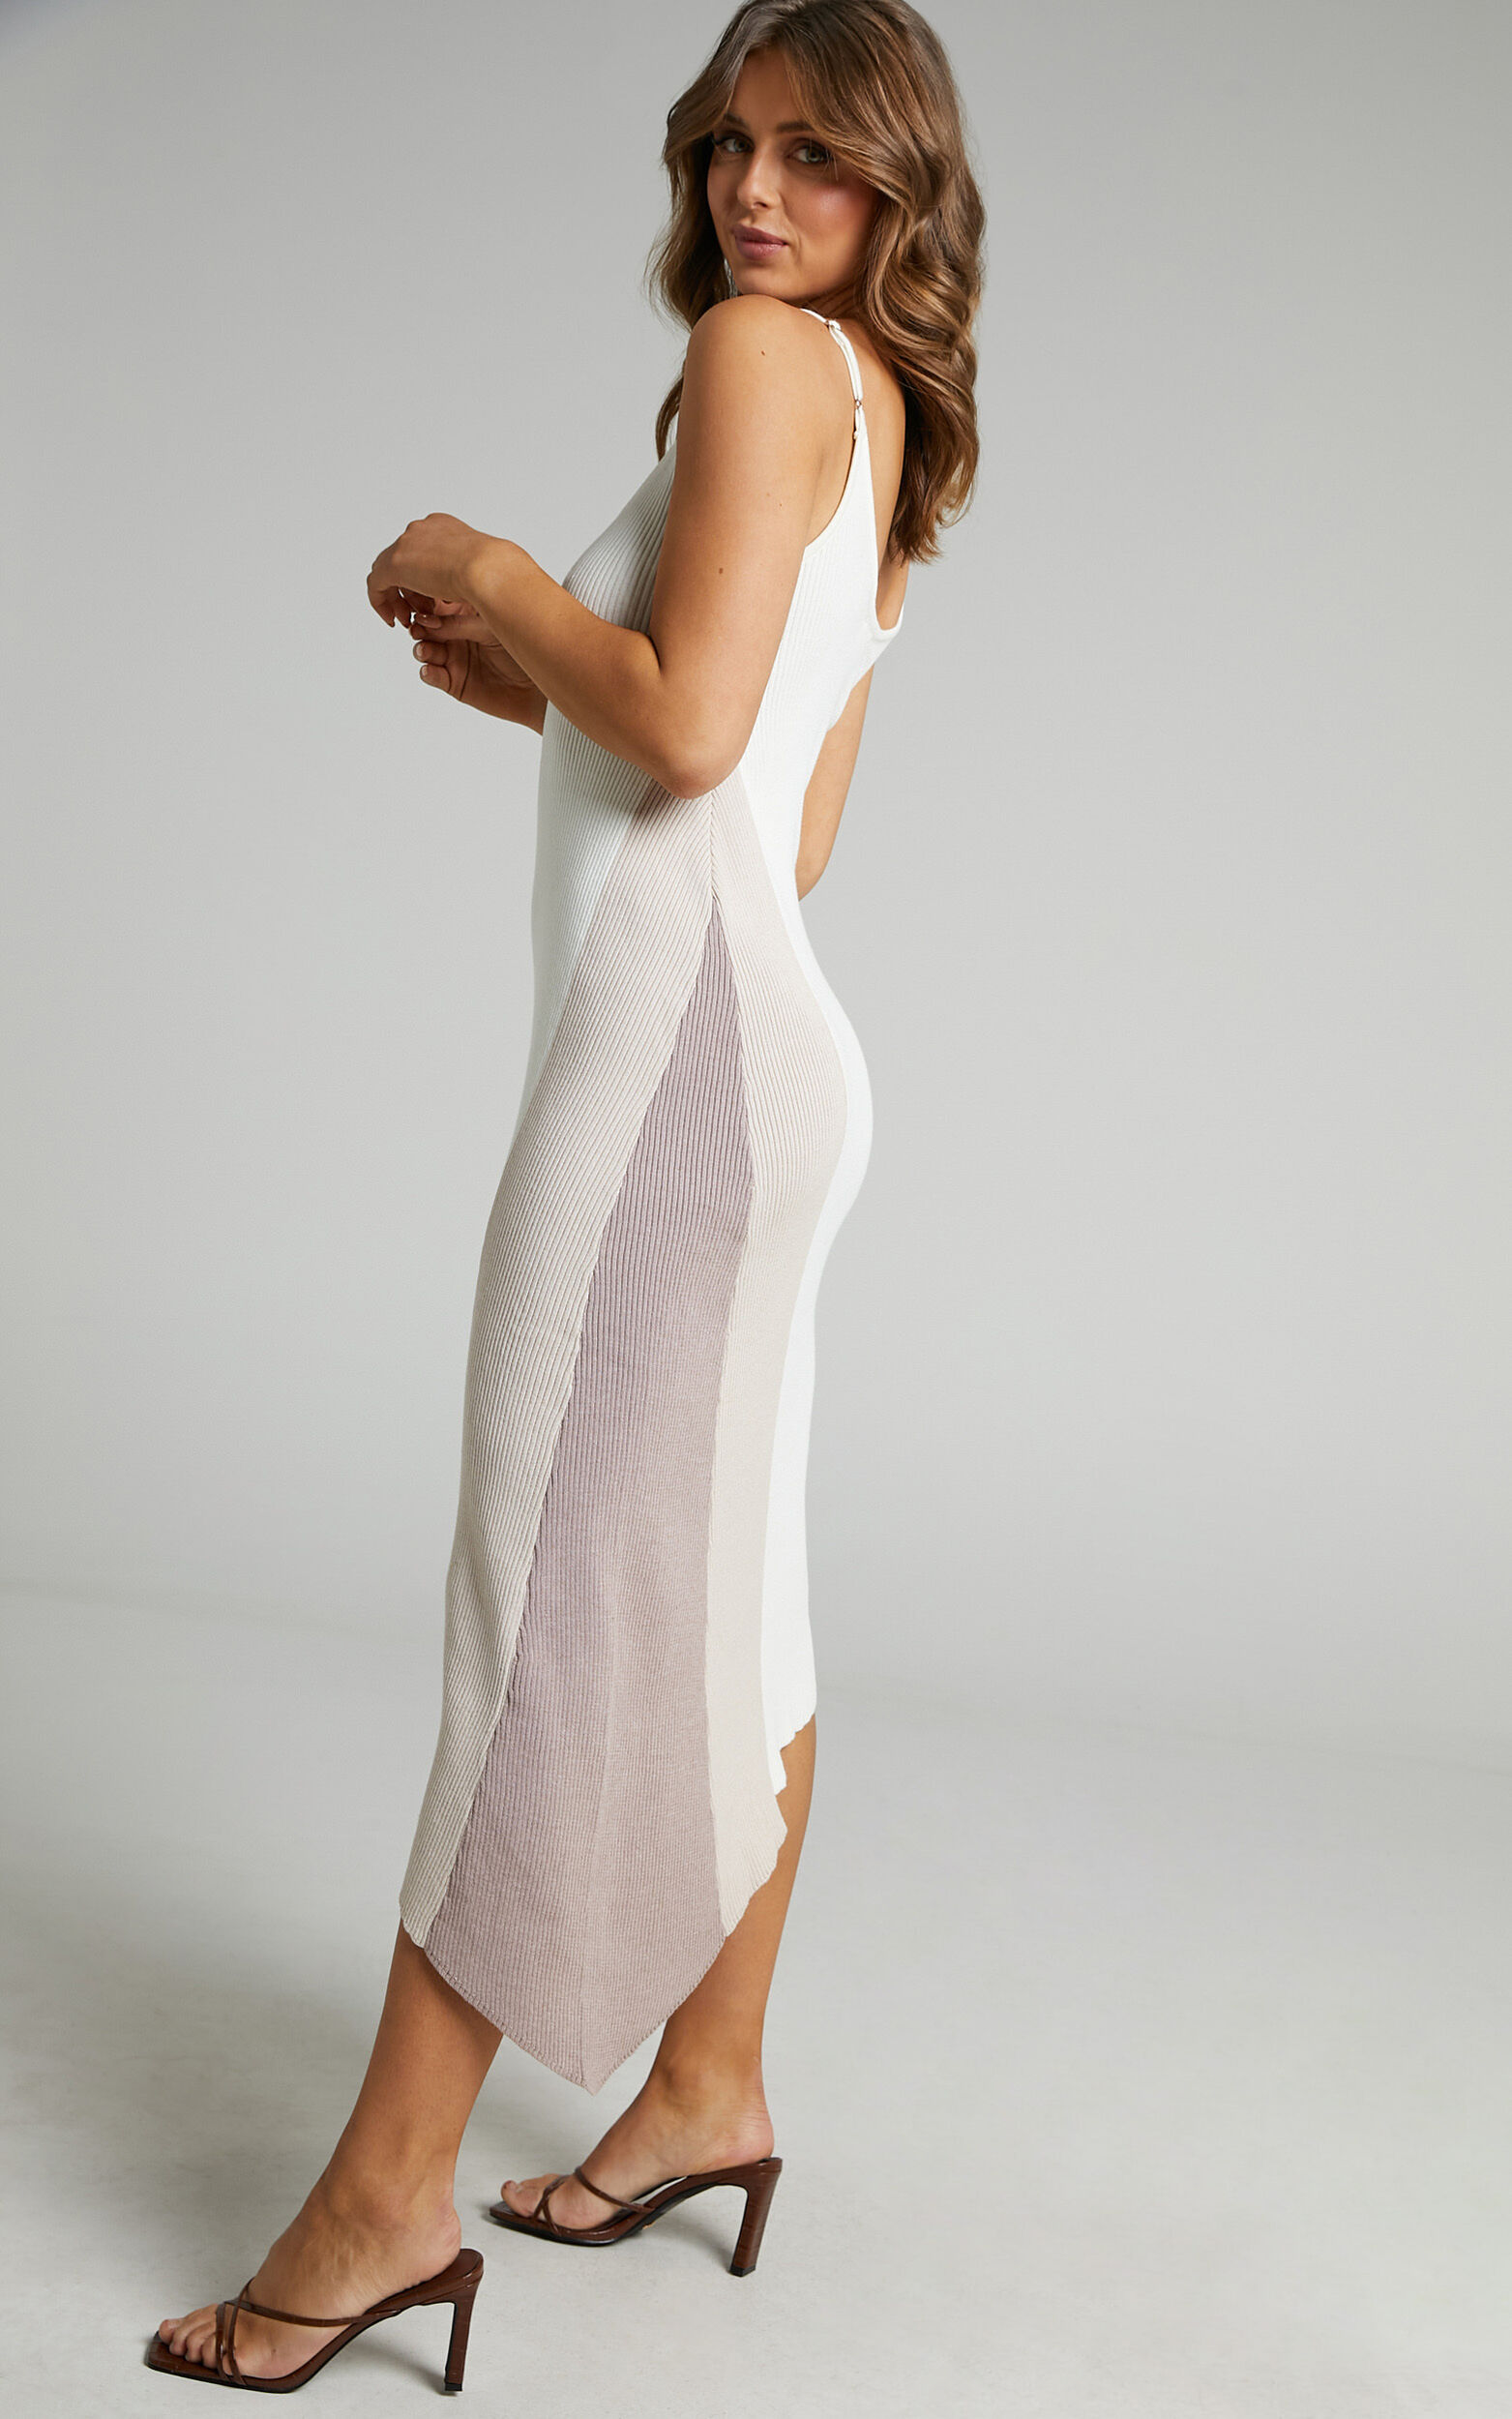 Claudia Knit Dress with Godet Side Panel in Cream - 06, CRE3, super-hi-res image number null